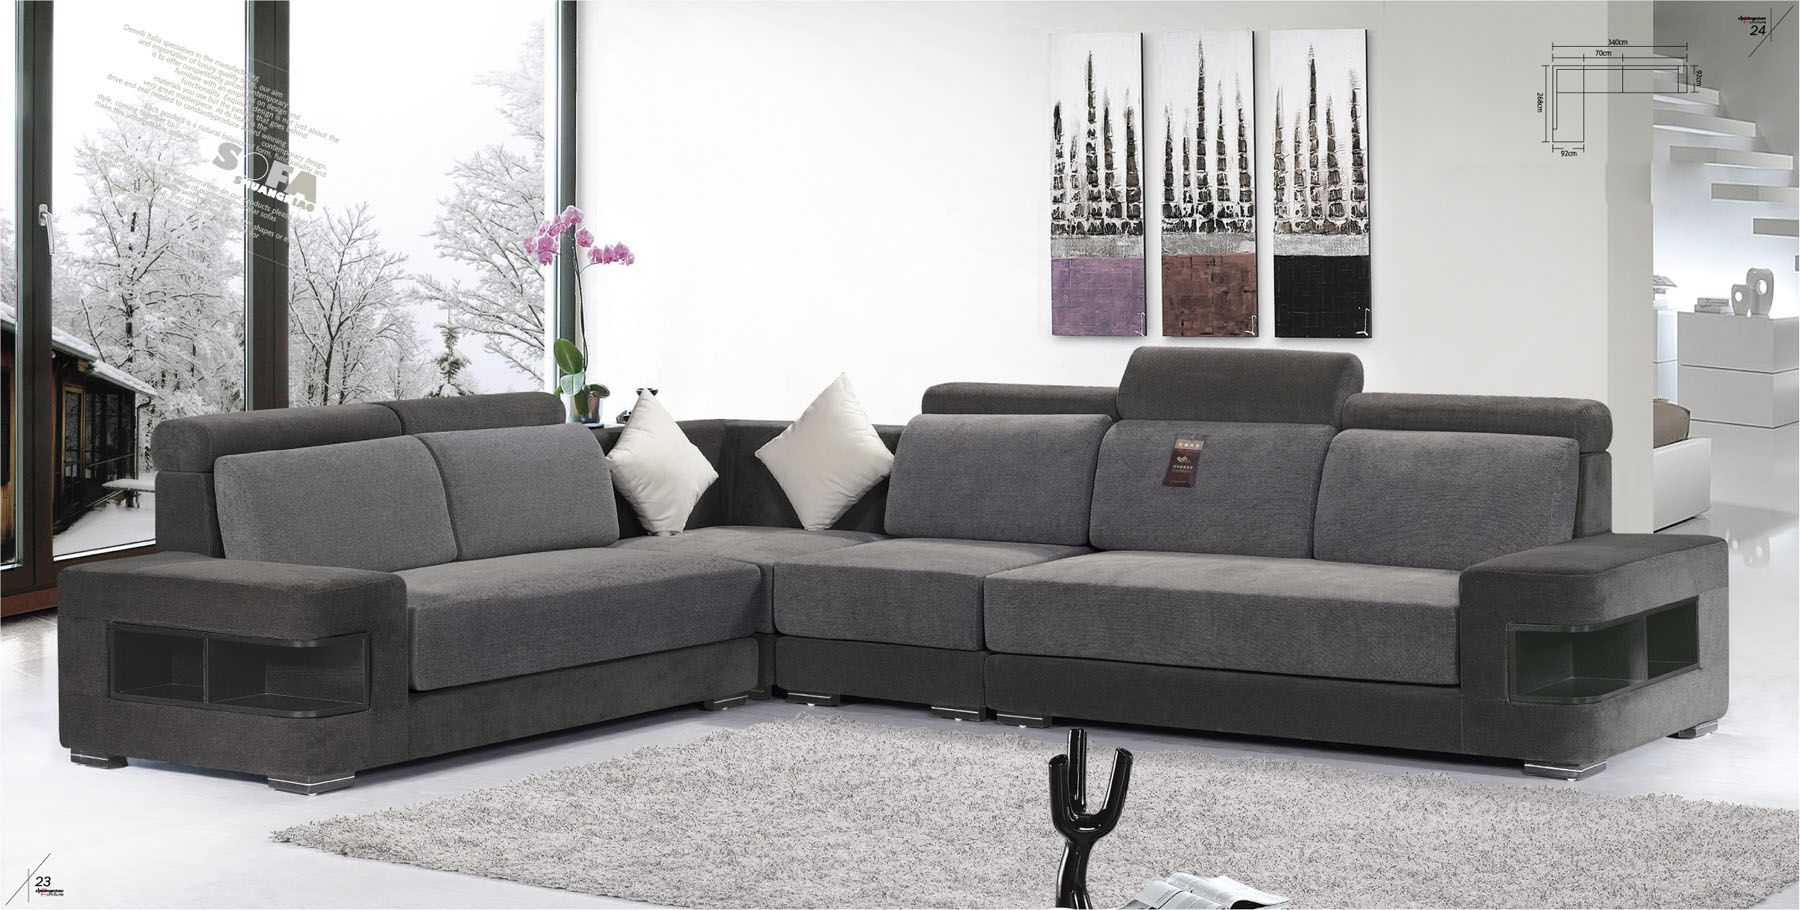 L Shaped Couch In 2020 Sofa Design Sofa Set Designs Living Room Sofa